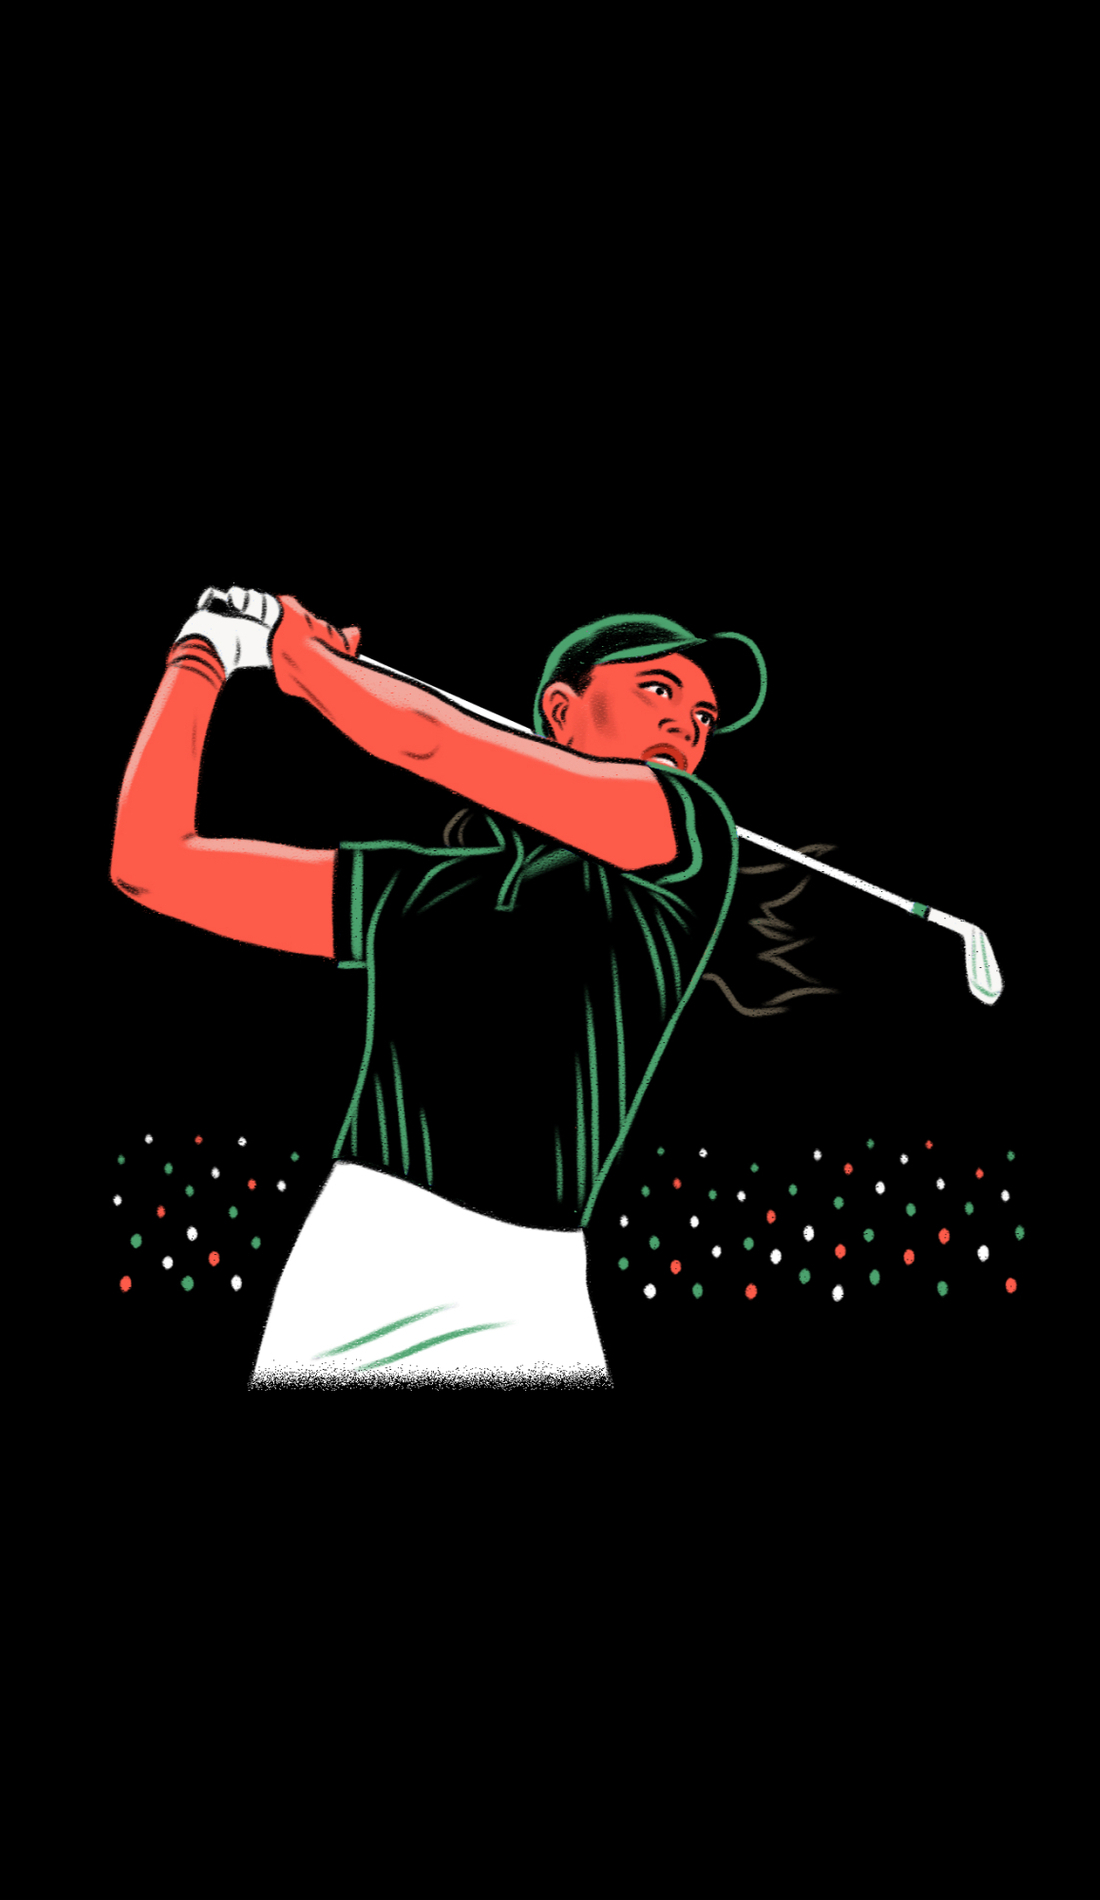 A The Players Championship live event